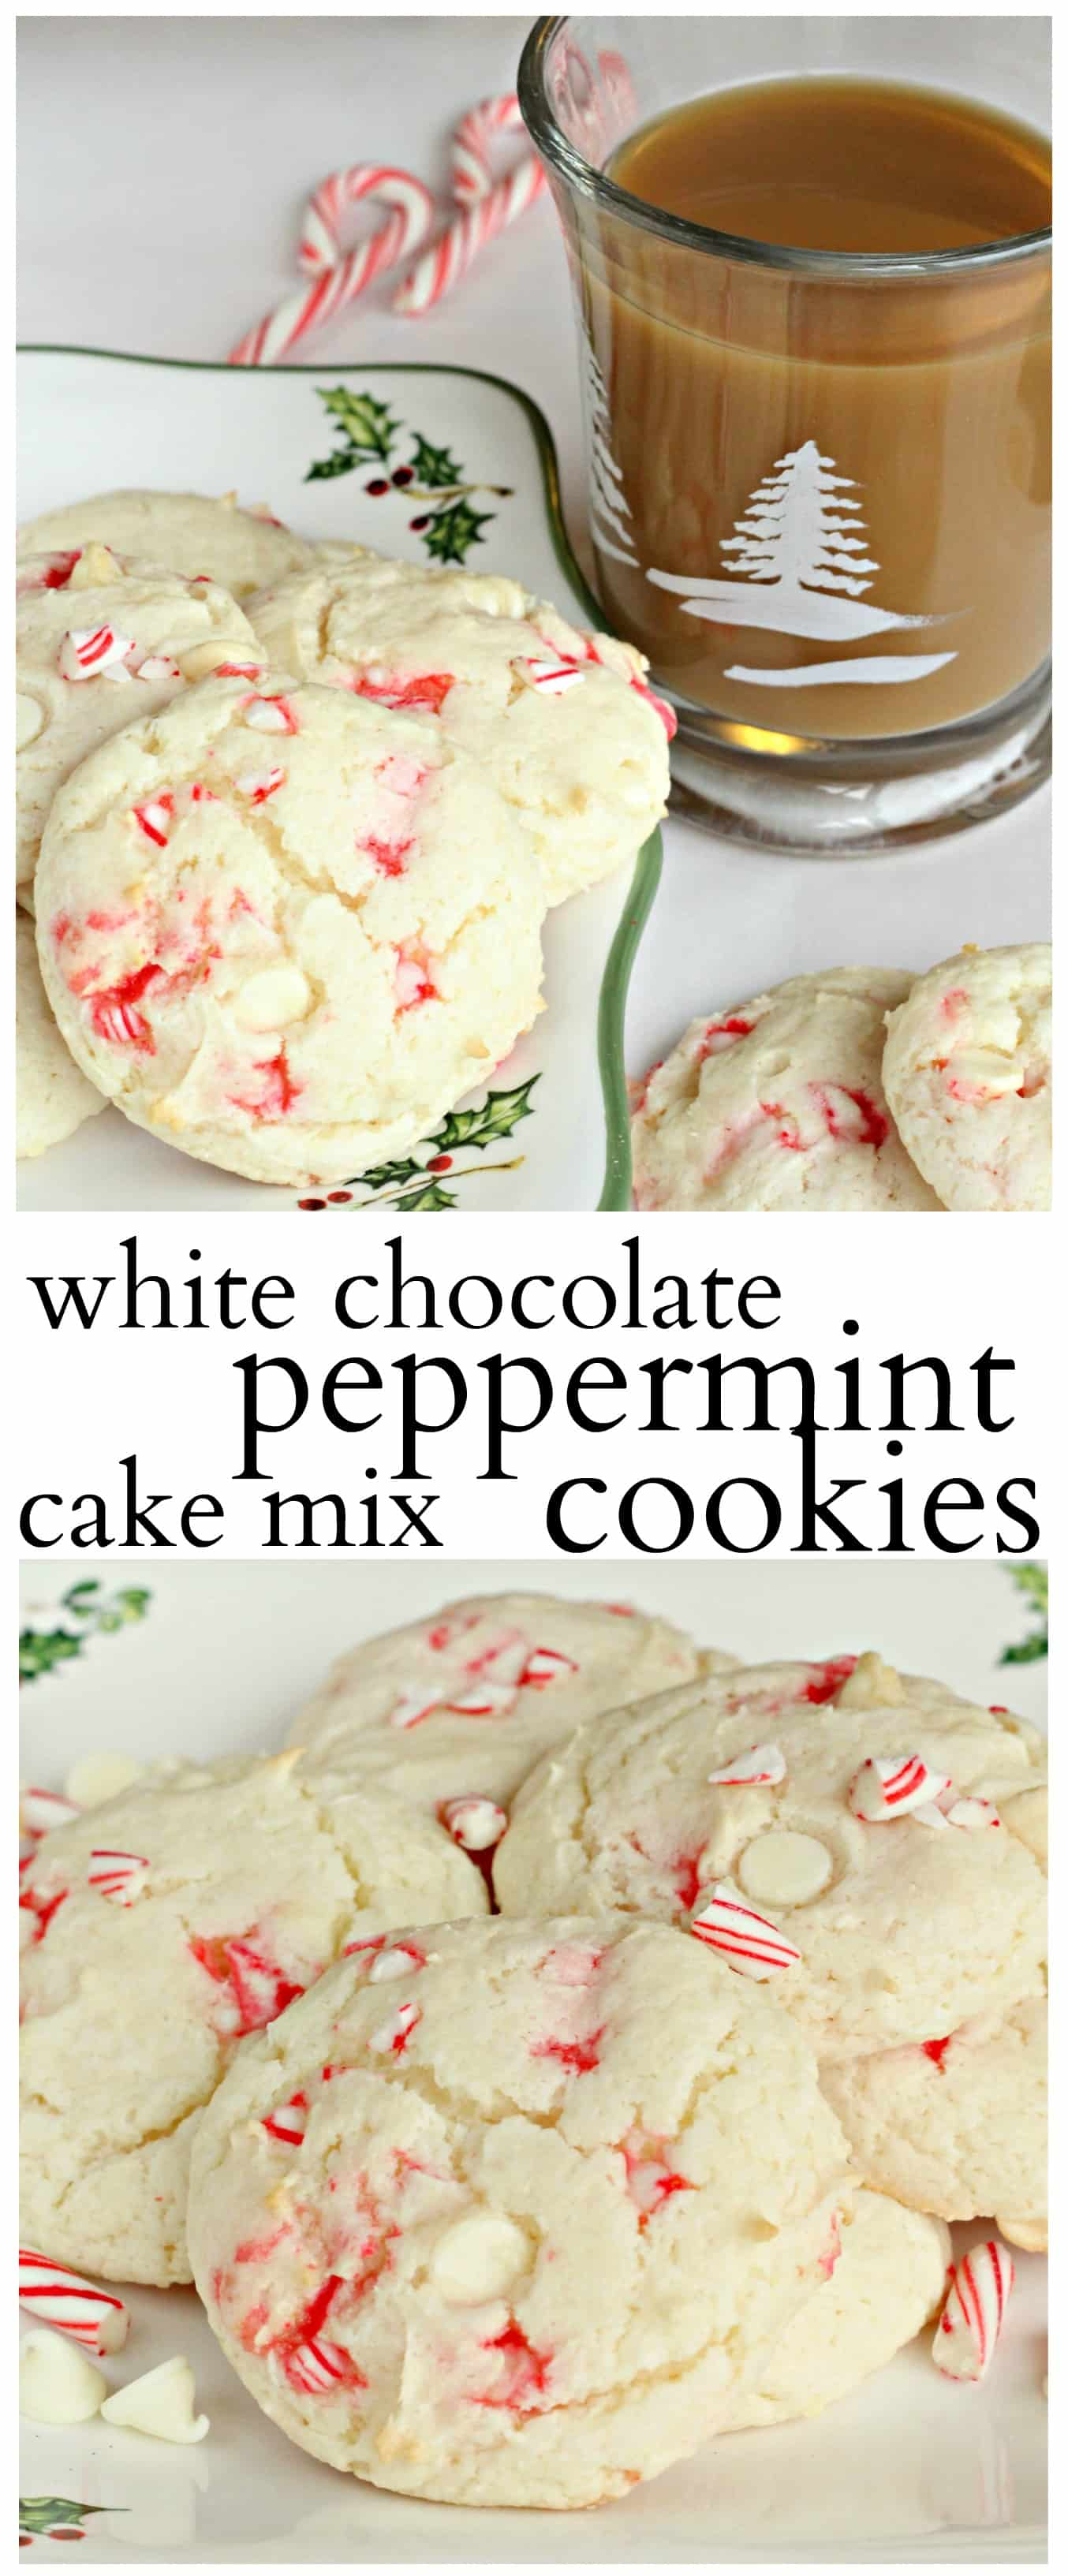 White Chocolate Peppermint Cake Mix Cookies - Life a Little Brighter